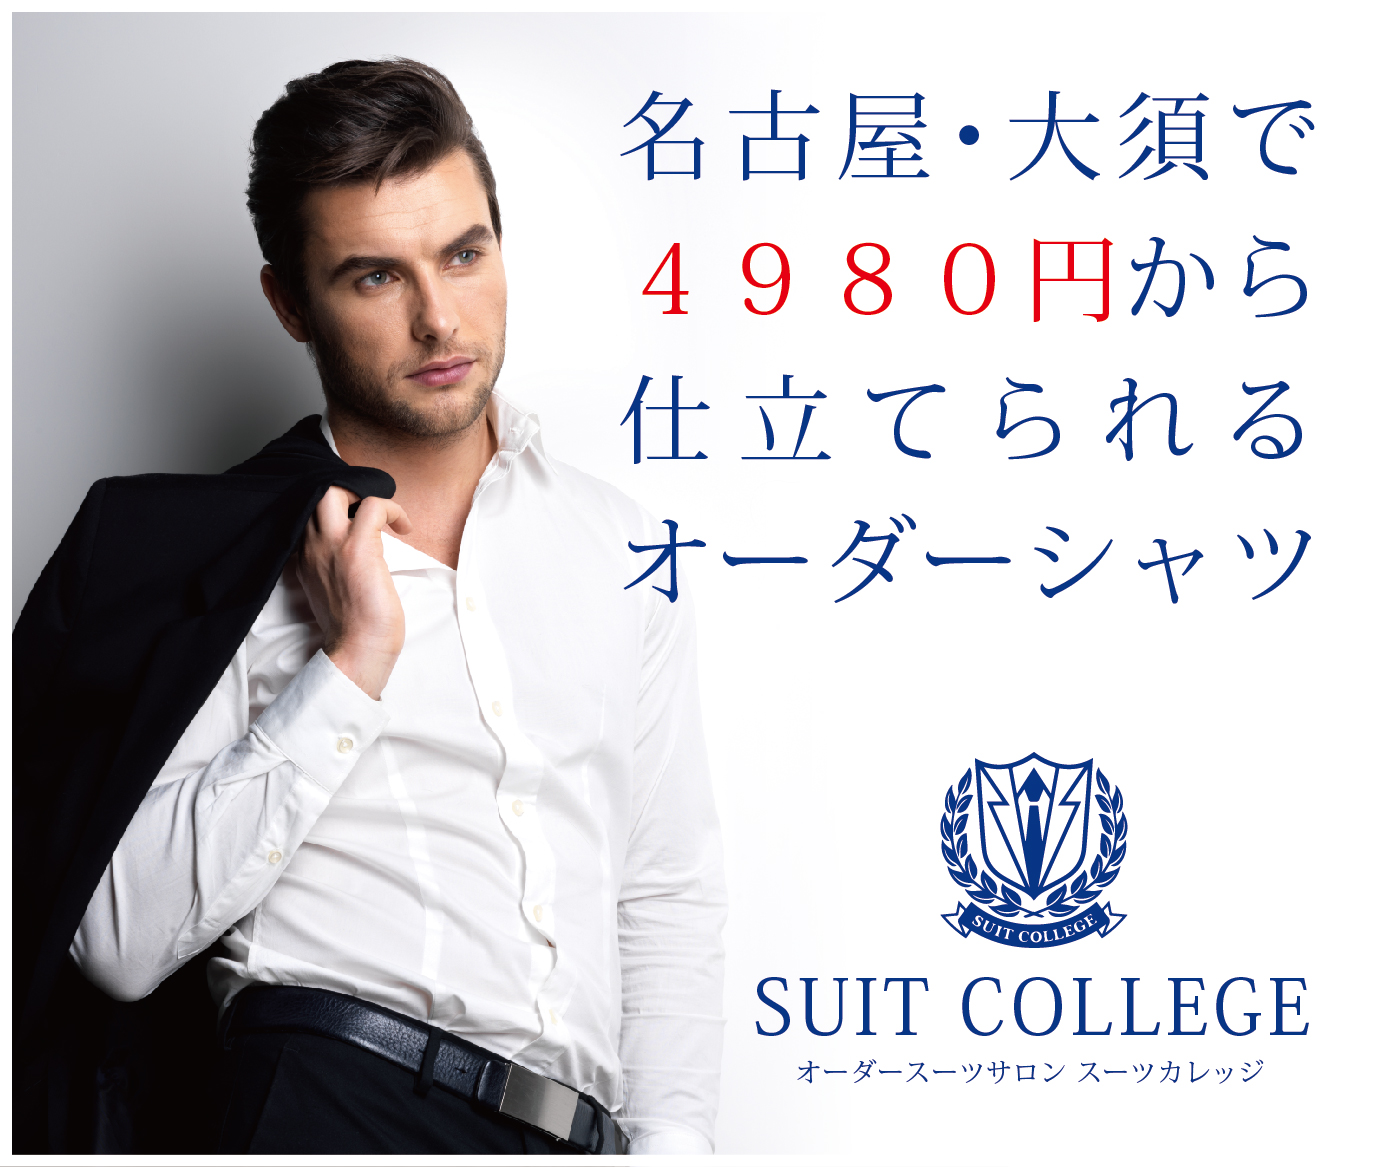 http://suit-college.com/order,shirt.php